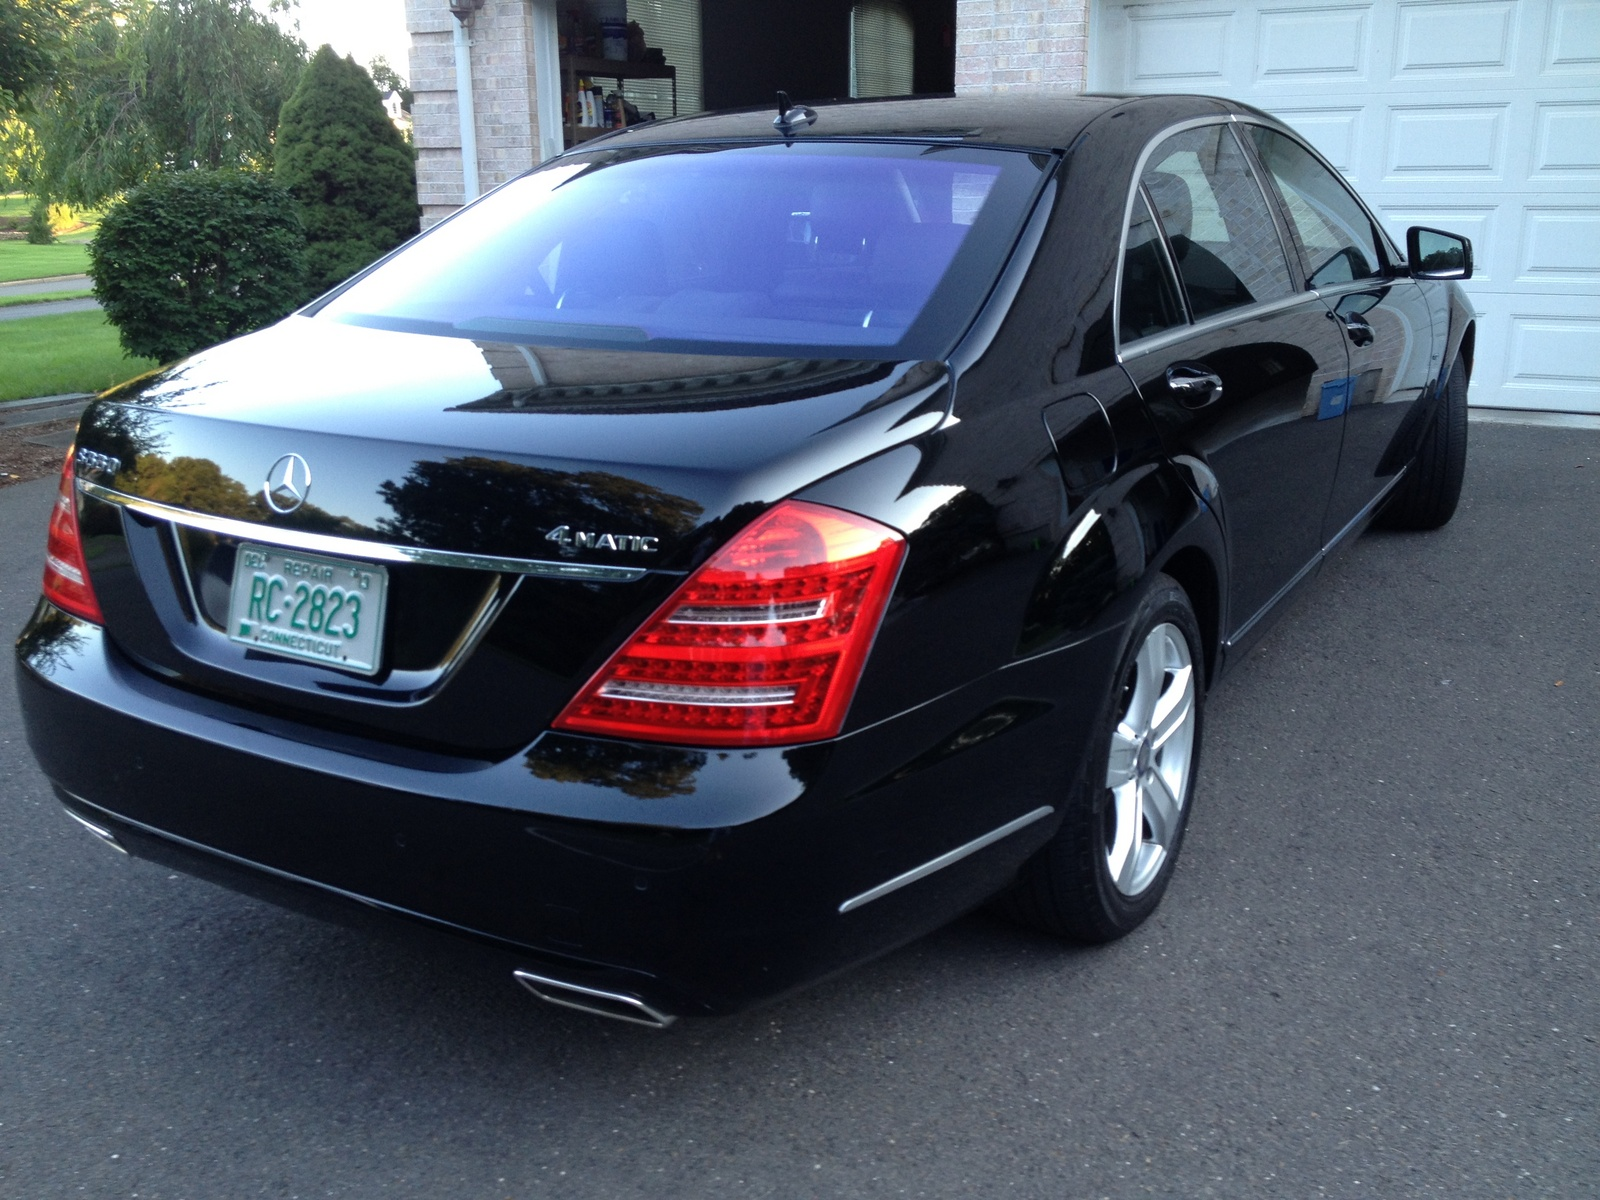 2012 mercedes benz s class pictures cargurus for 2007 mercedes benz s550 price